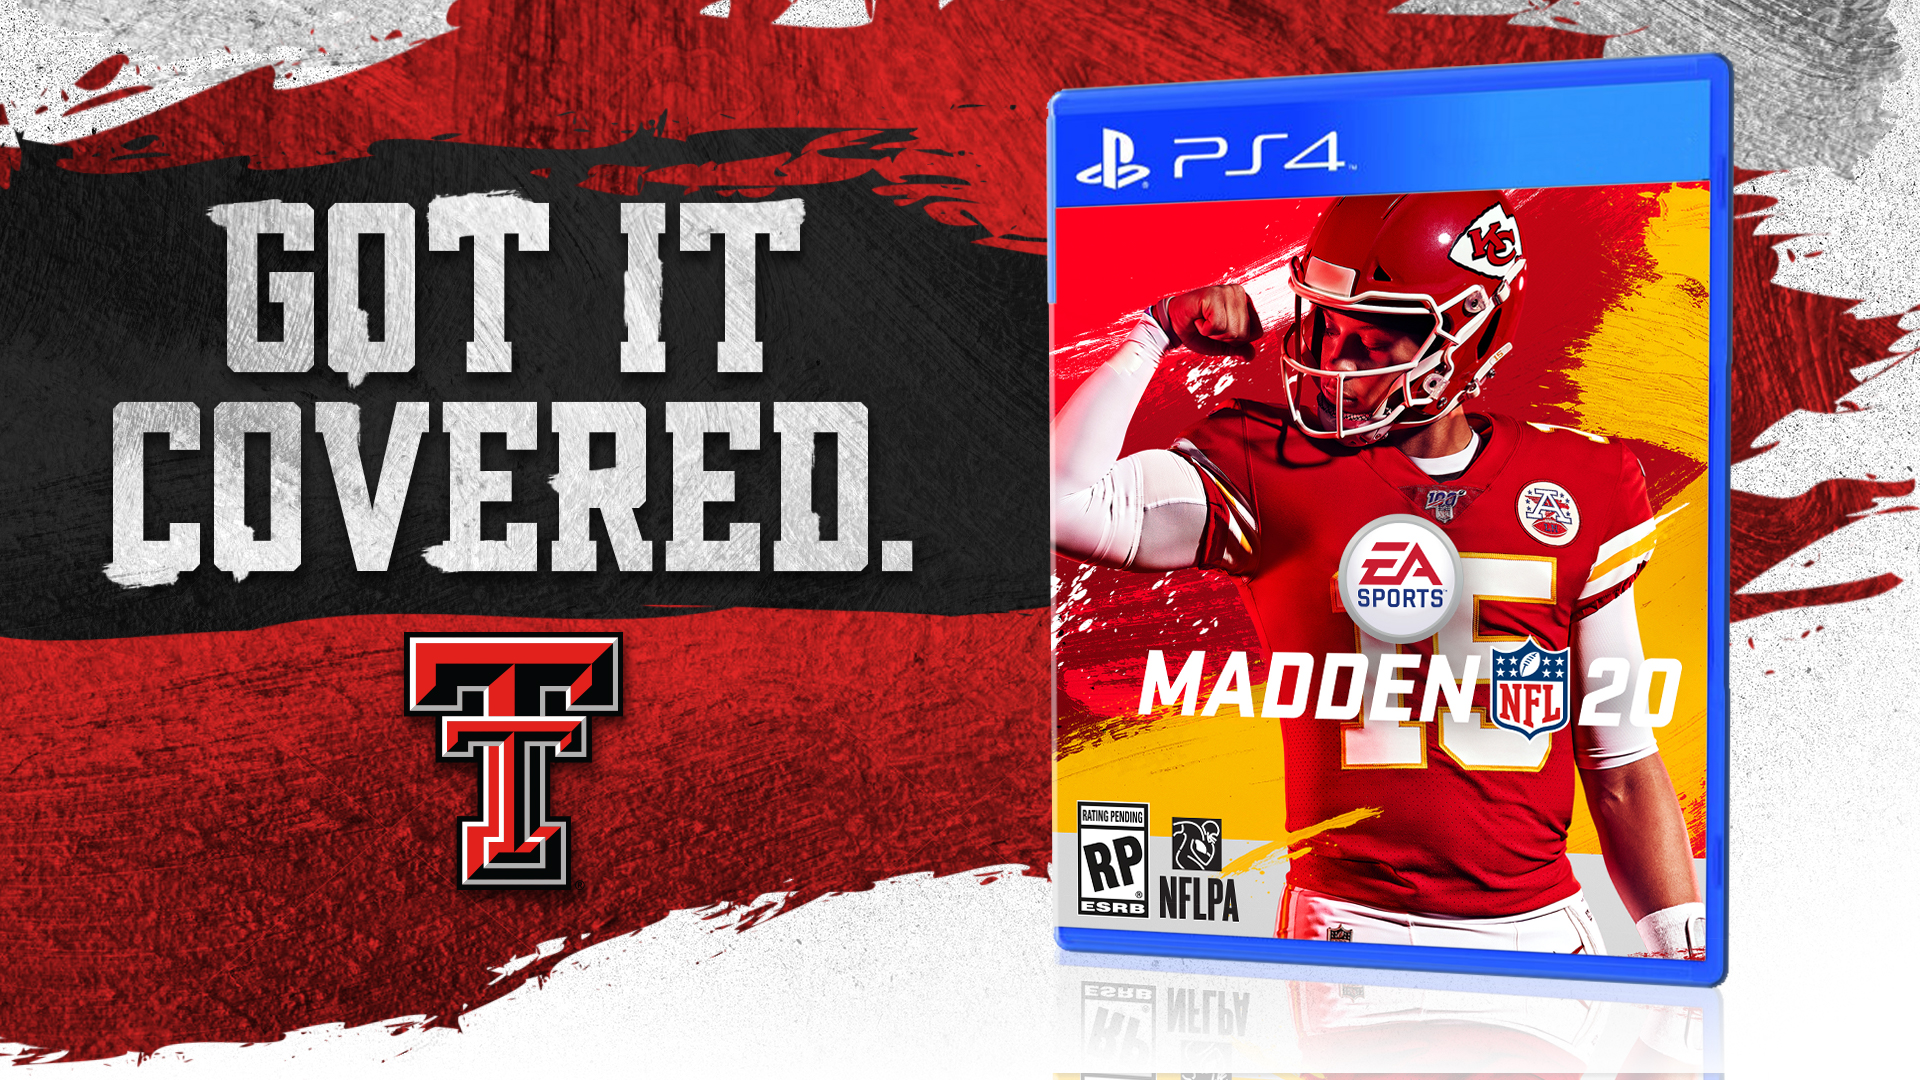 Mahomes Featured on EA Sports Madden 20 Cover - Texas Tech